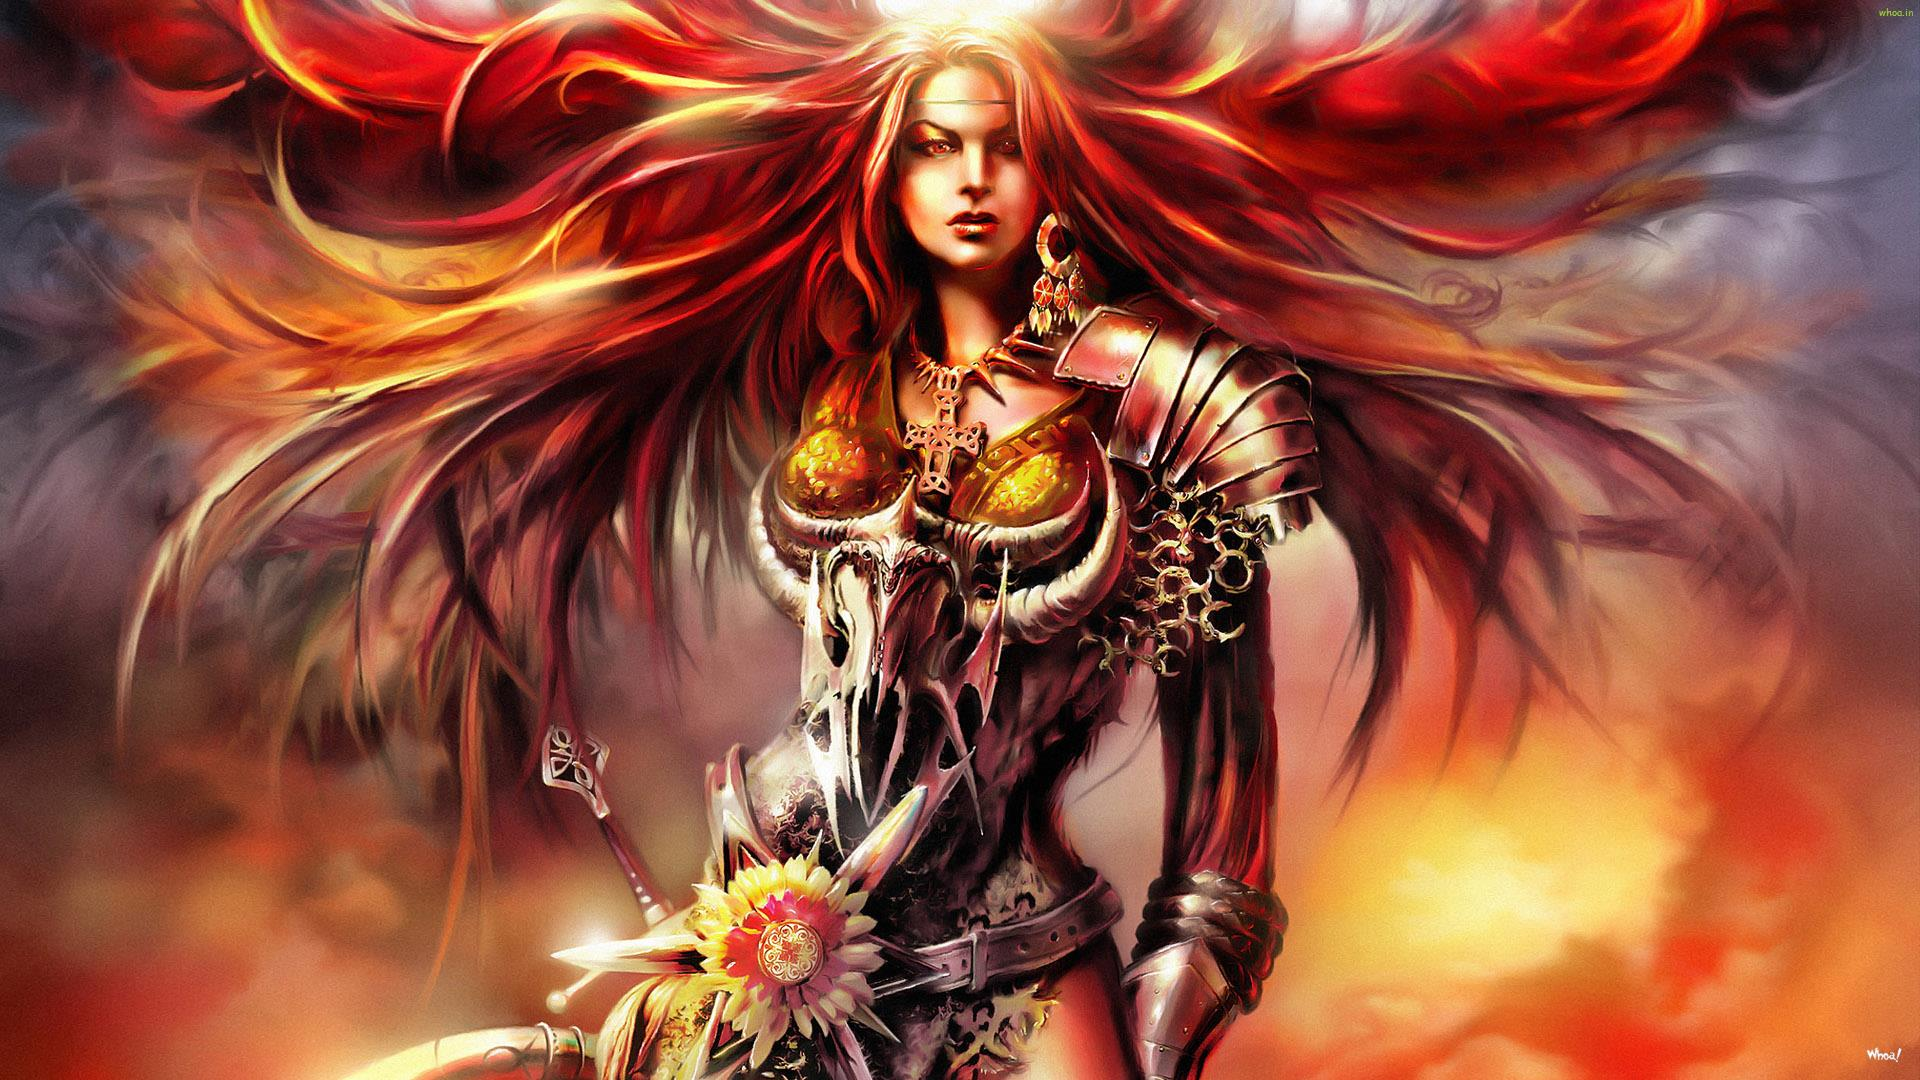 Group Of Games Girls Hd Wallpapers